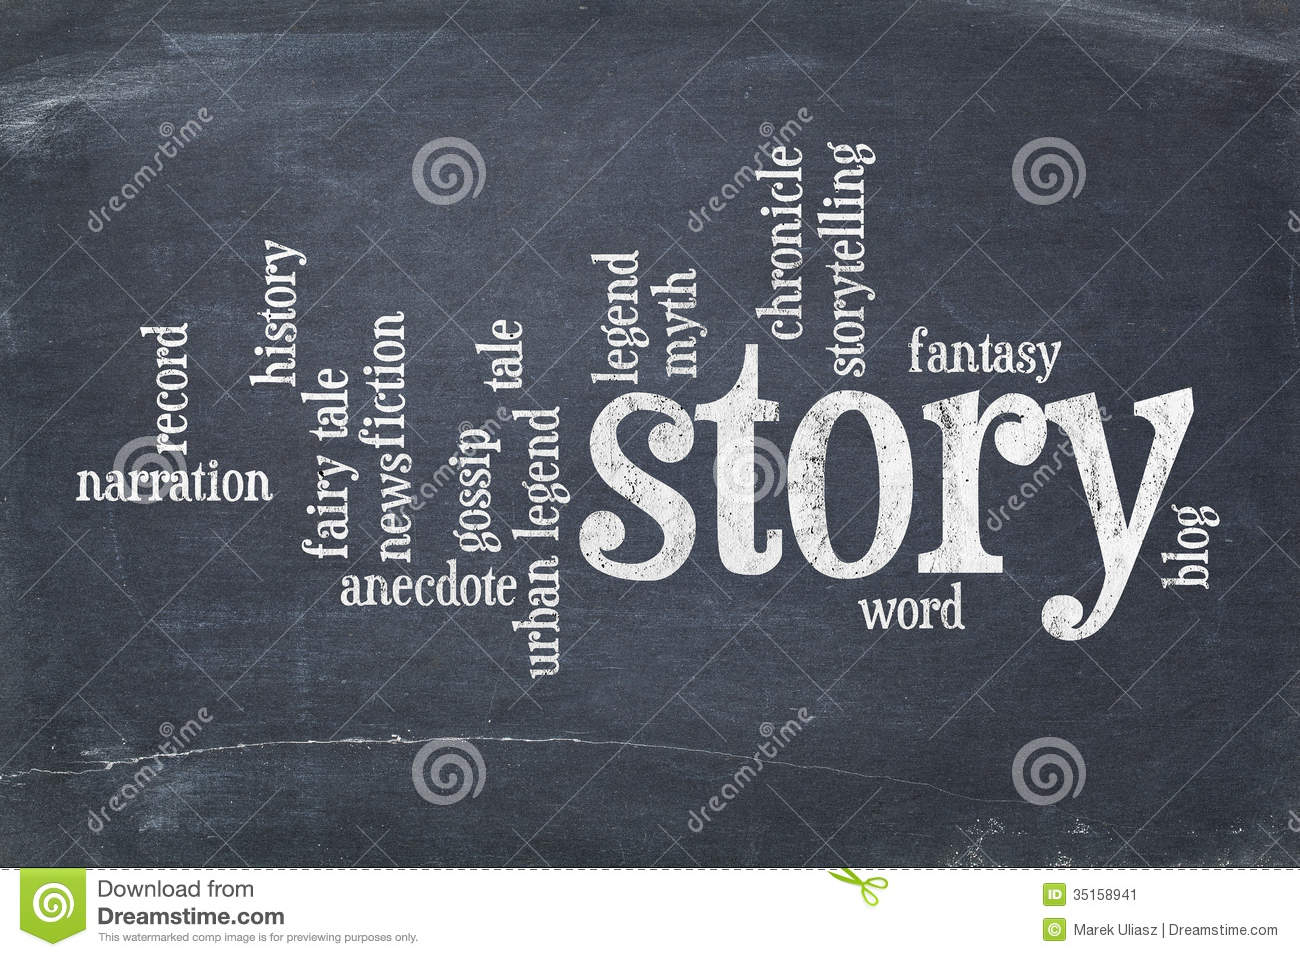 how to start a myth story